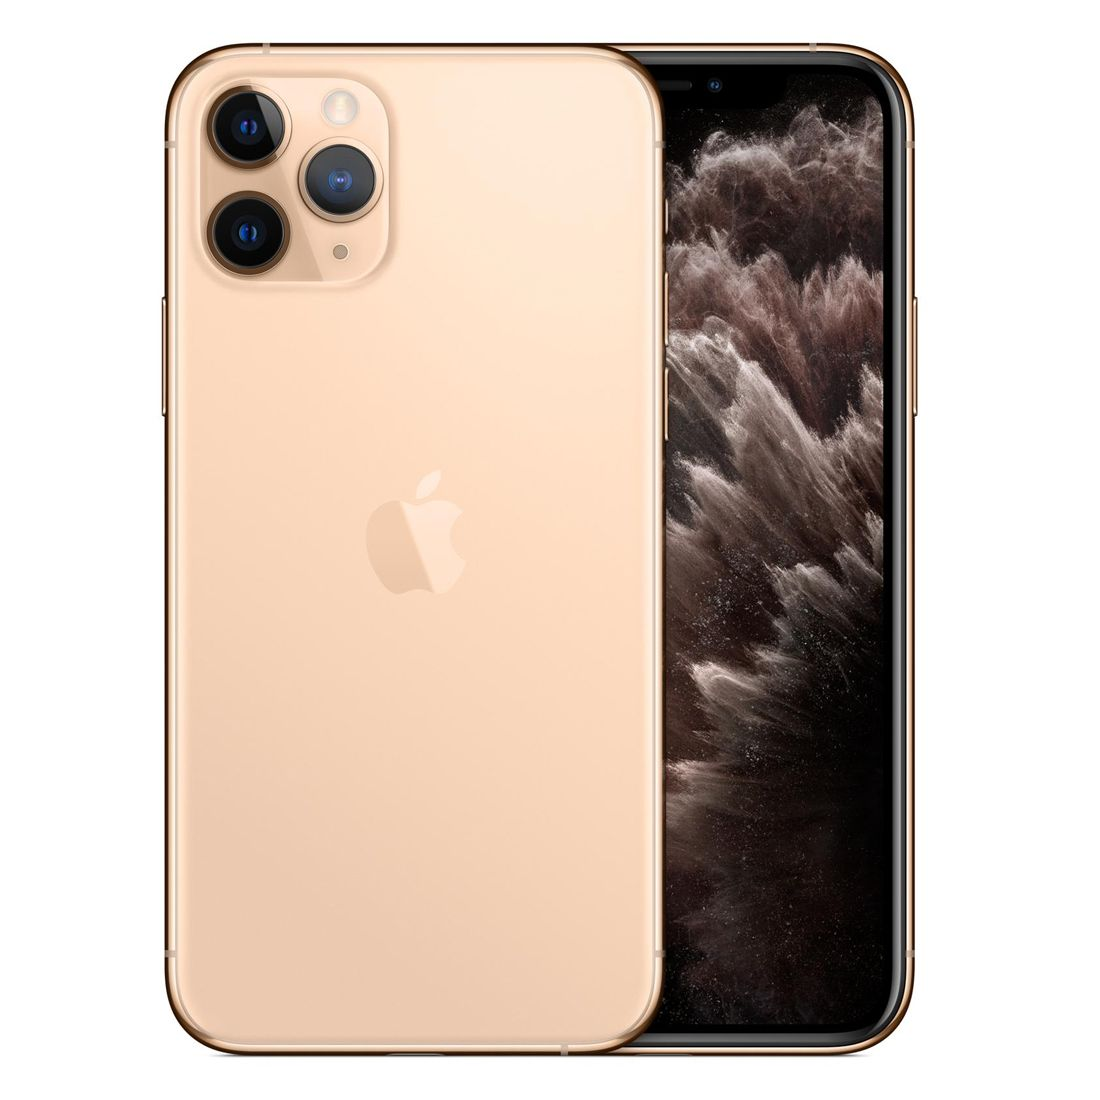 [Open Box - As New] Apple iPhone 11 Pro 256GB - Gold